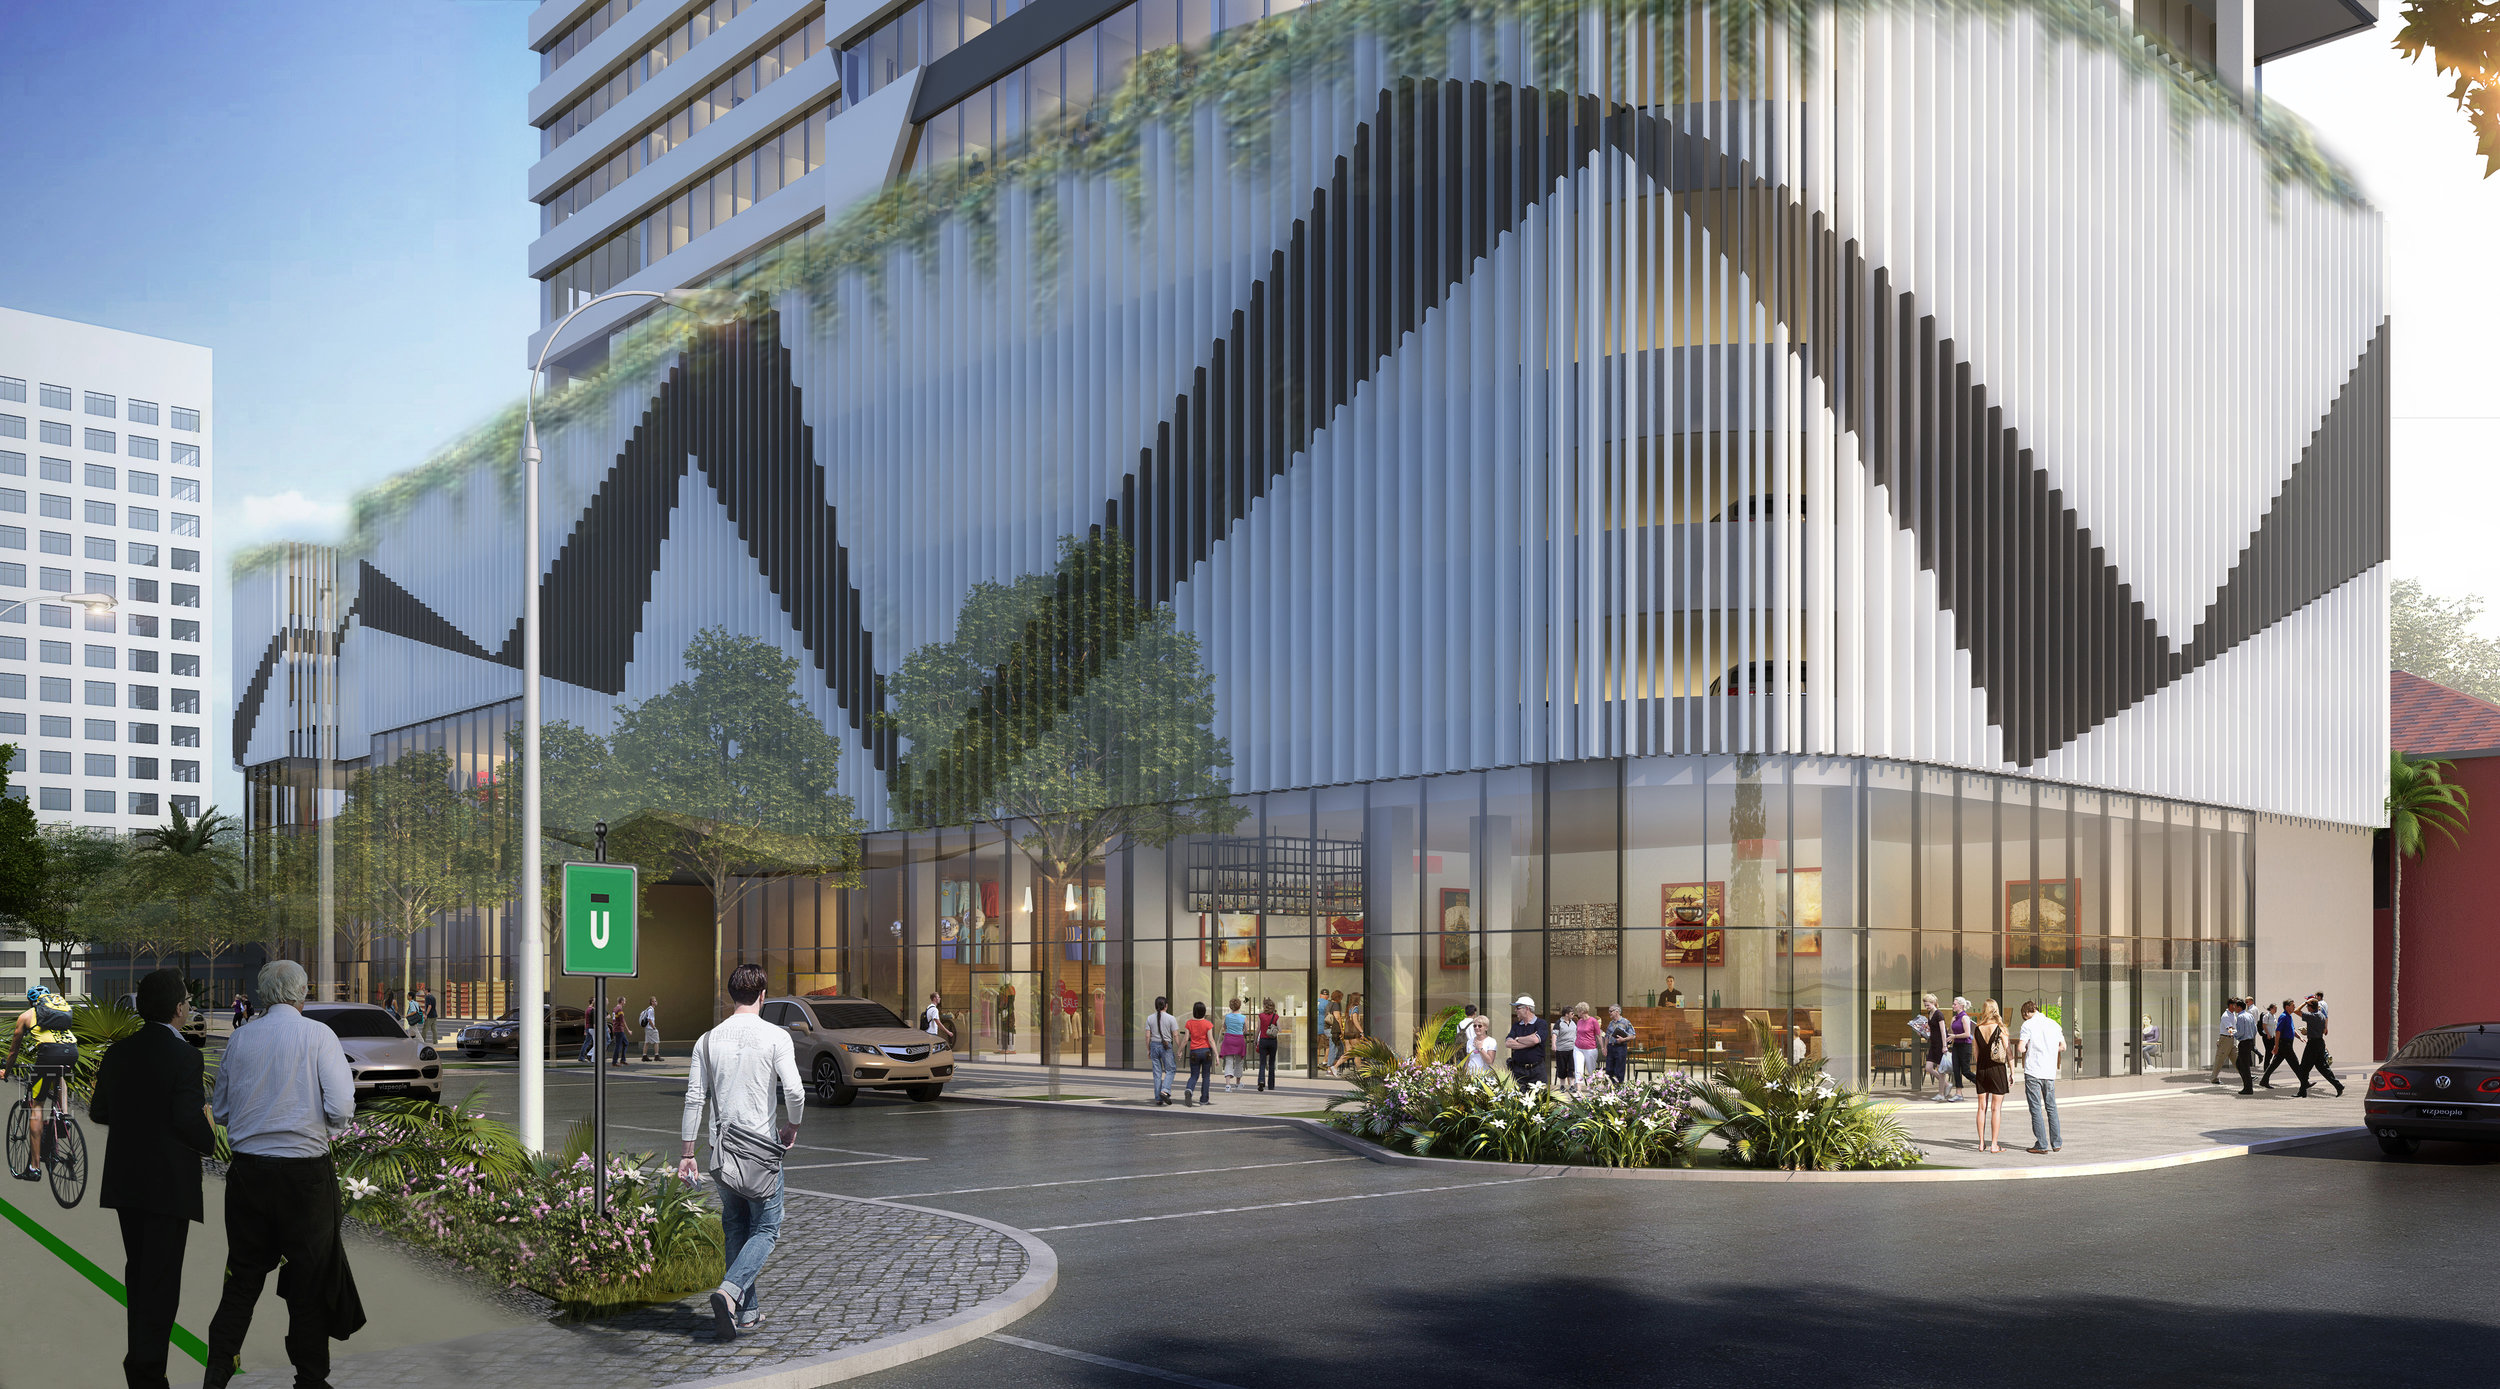 AC Hotel By Marriott & Element By Westin Rendering